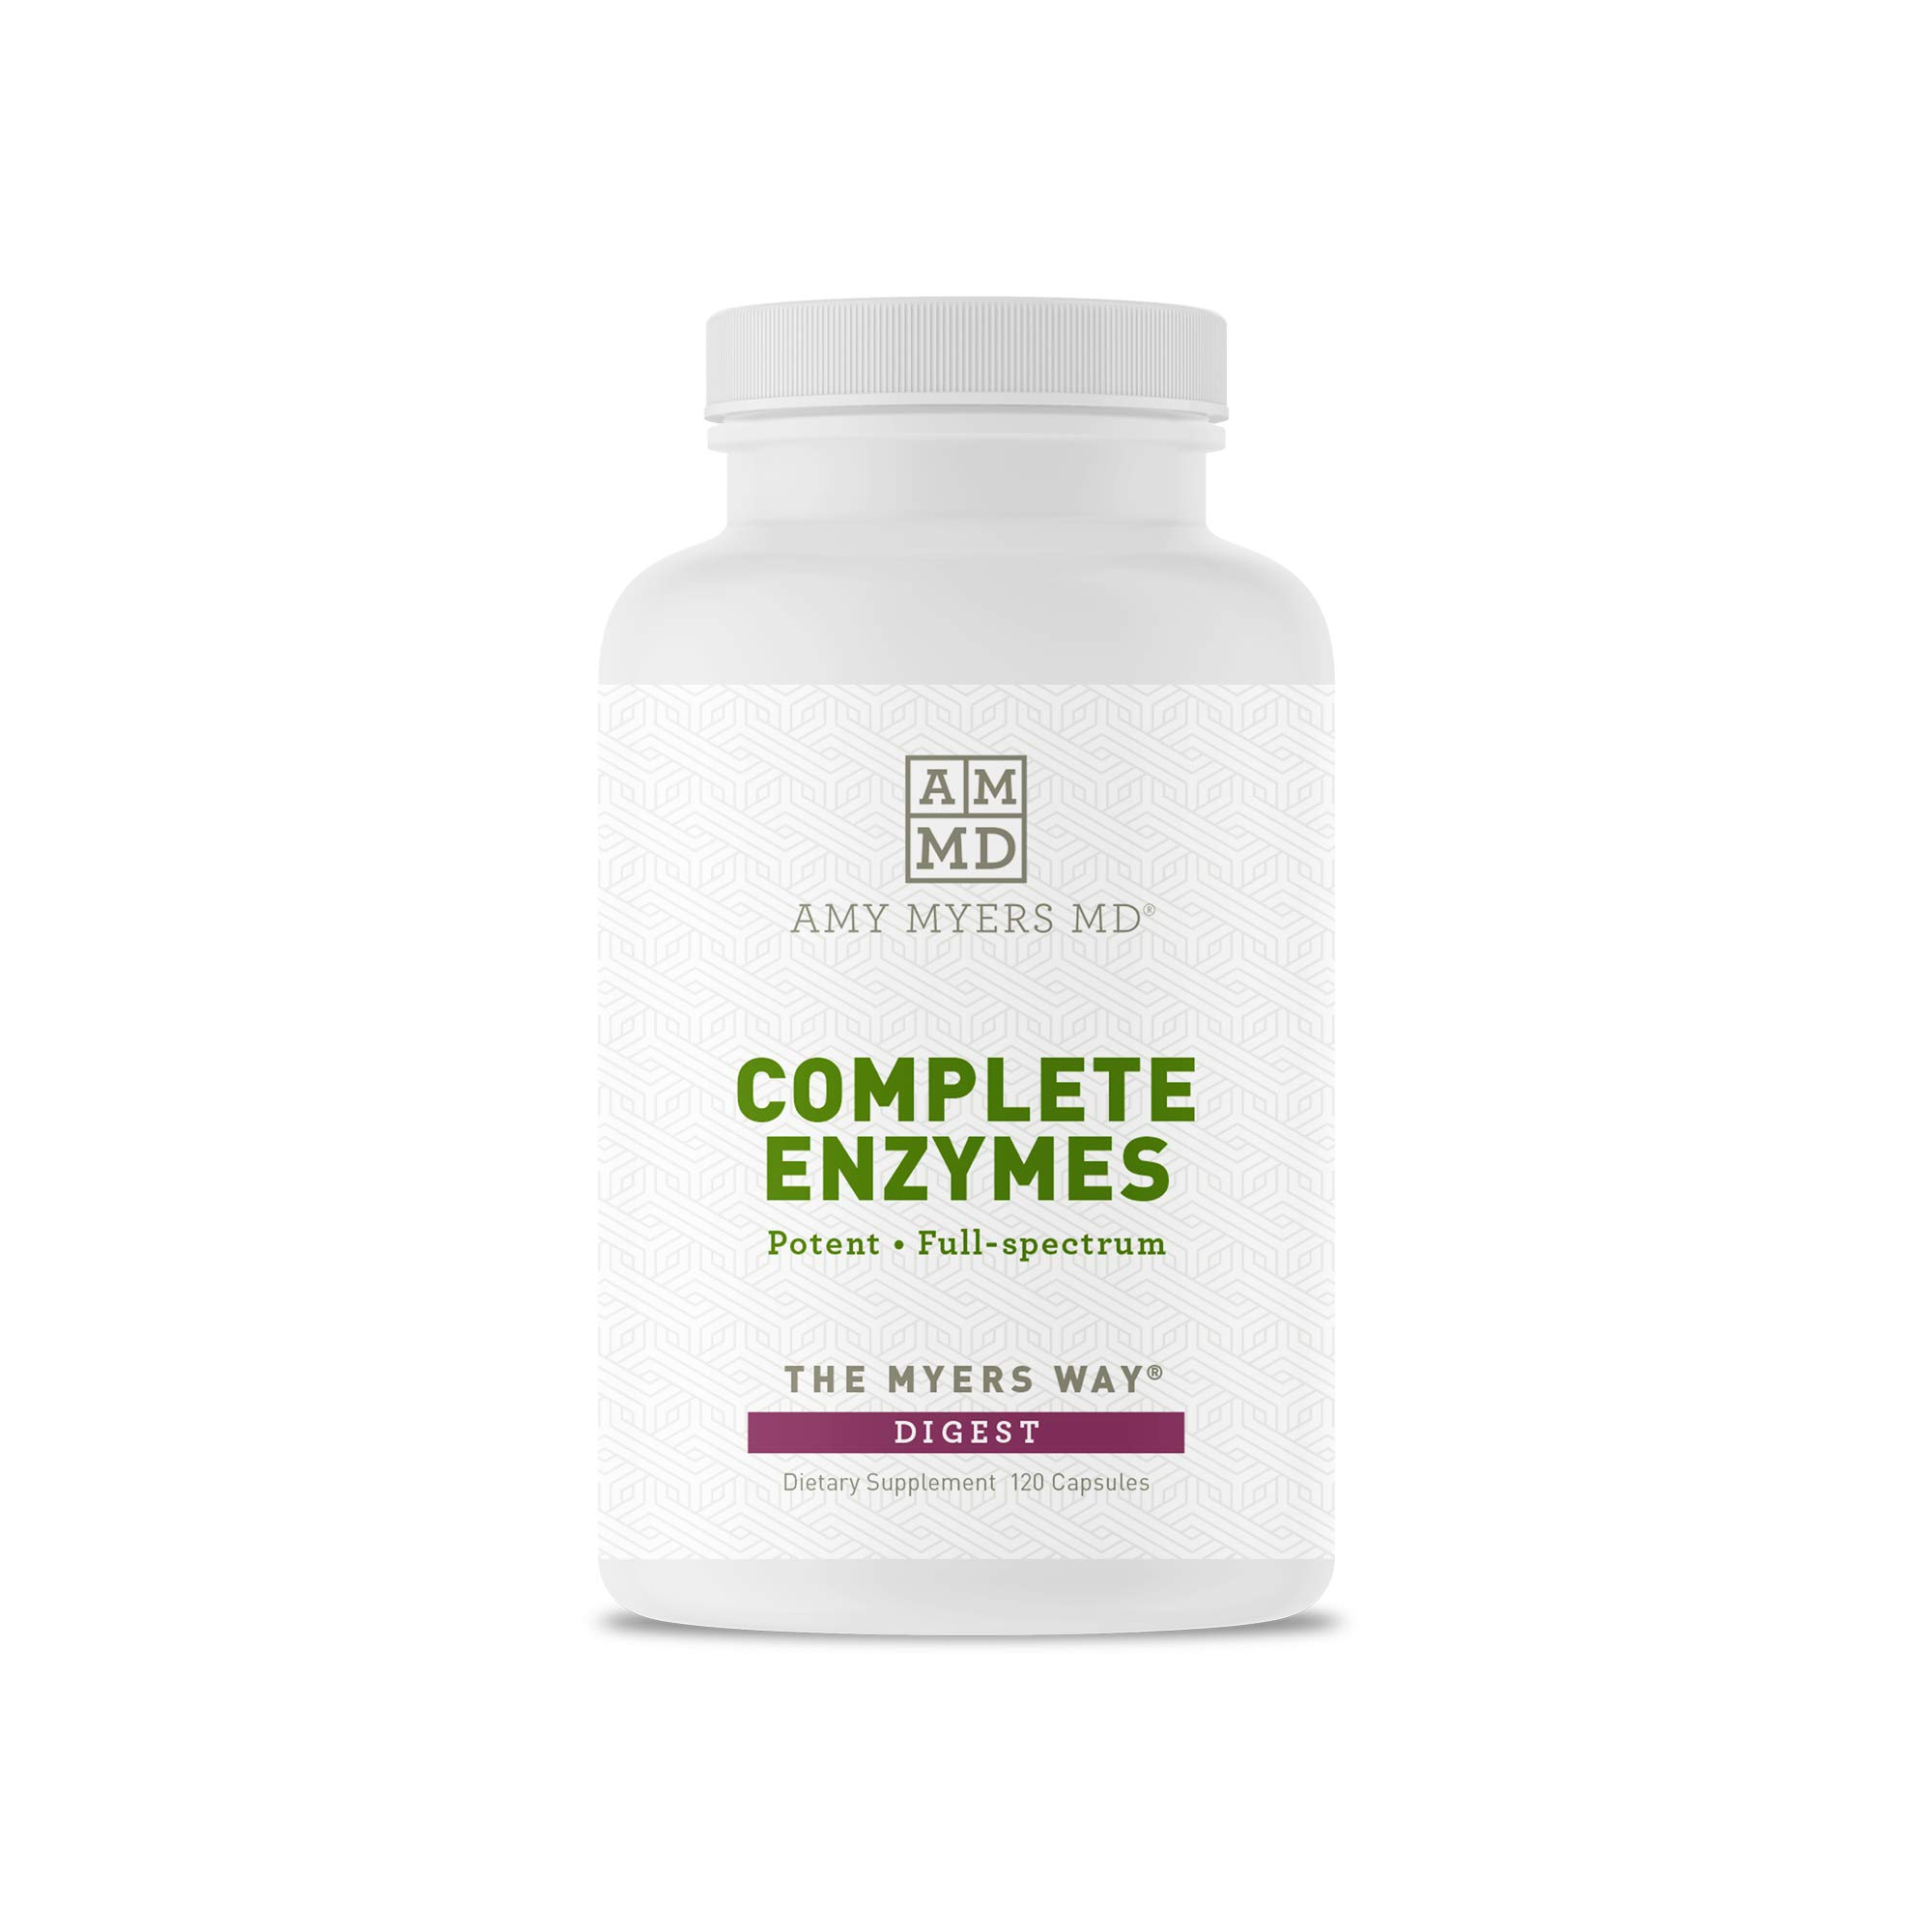 Dr. Amy Myers Digestive Enzymes - 19 Enzymes to Support IBS, Leaky Gut, Bloating, Constipation, Gluten Exposure - Amylase, Lactase, Lipase, Alkaline Protease, Sucrase + More - 120 Vegetarian Capsules by Amy Myers, MD